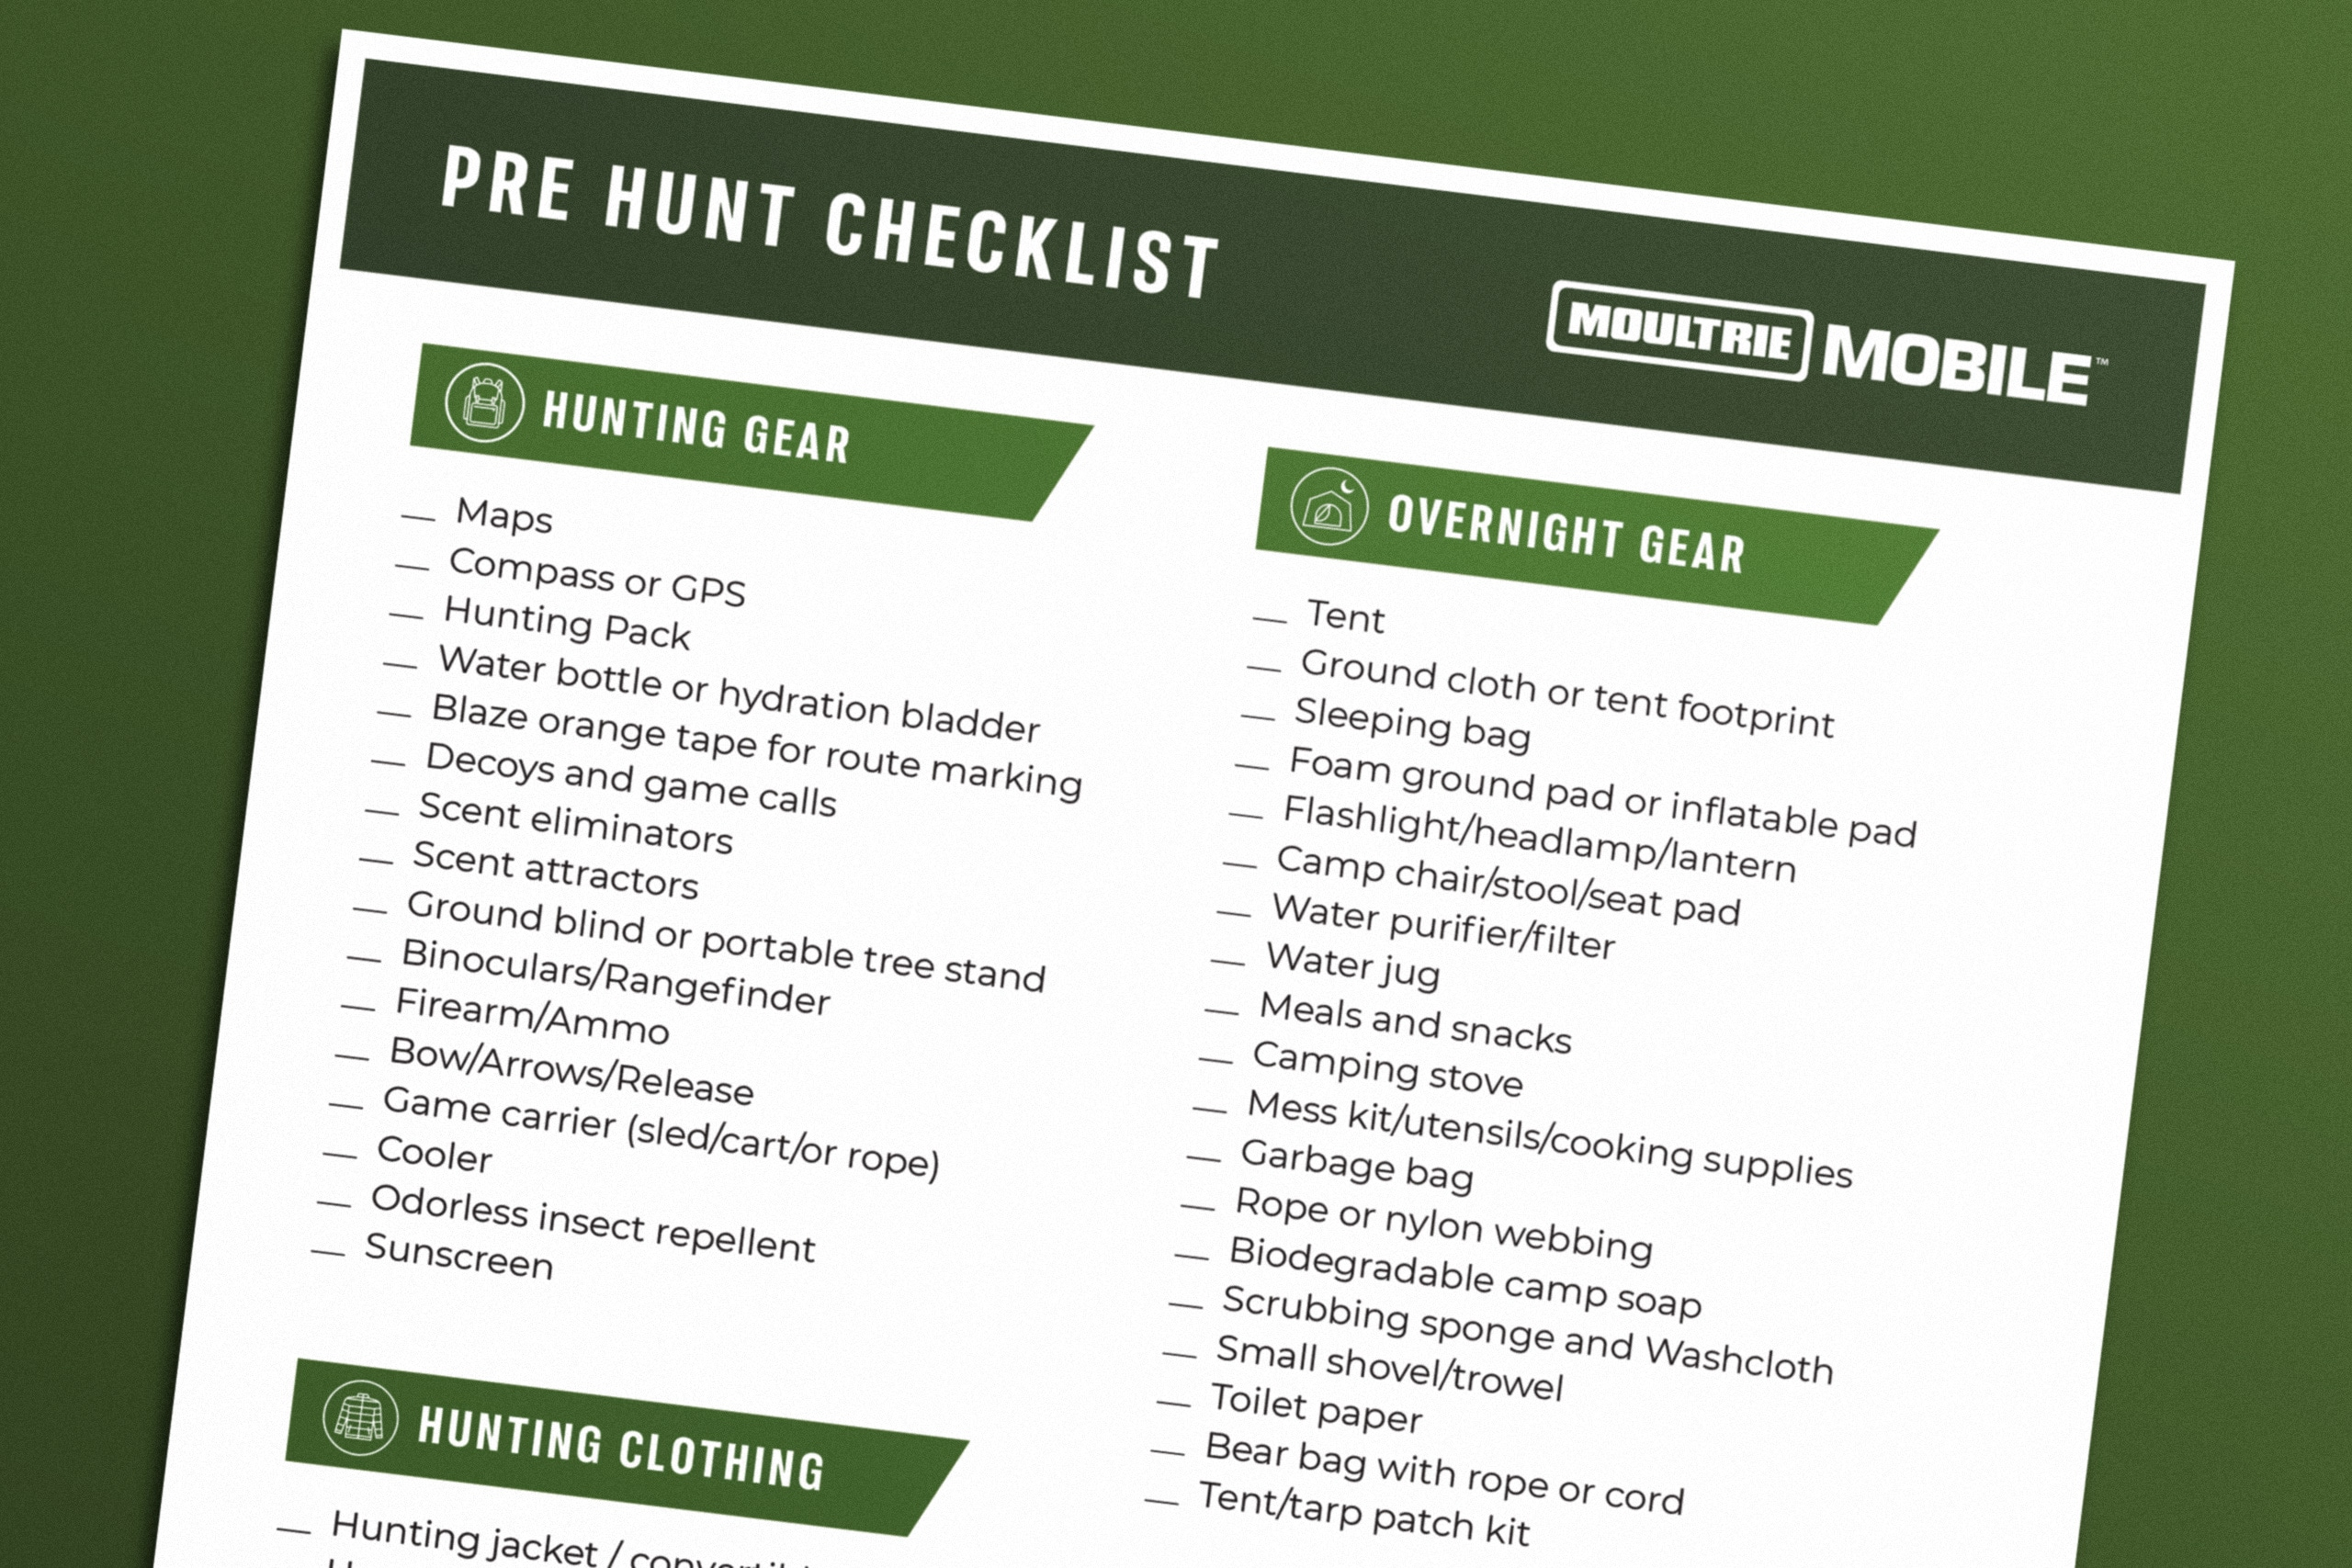 Pre Hunting Checklist From Moultrie Mobile